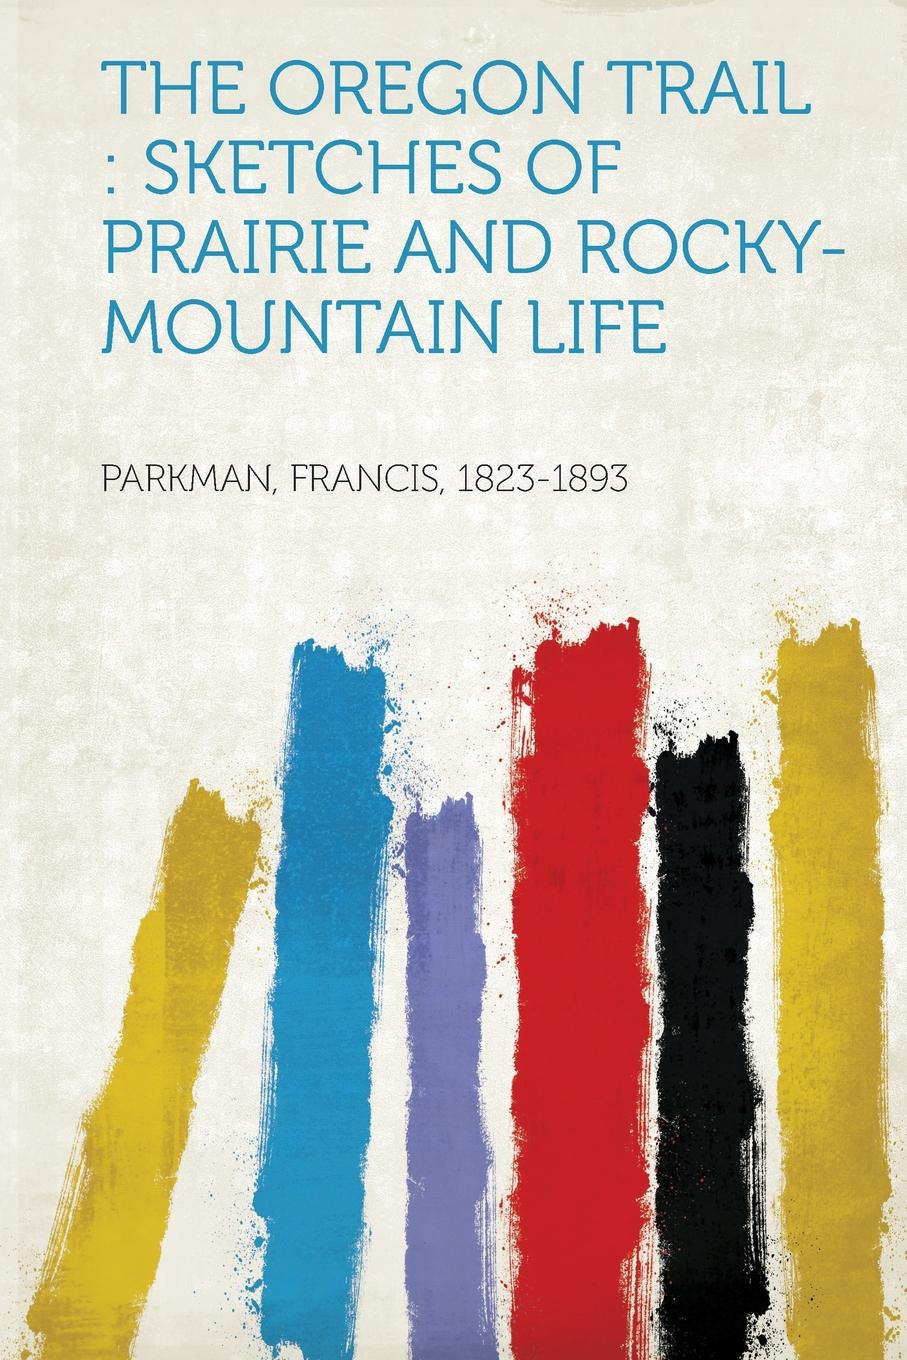 Parkman Francis 1823-1893 The Oregon Trail. Sketches of Prairie and Rocky-Mountain Life francis parkman the oregon trail sketches of prairie and rocky mountain life